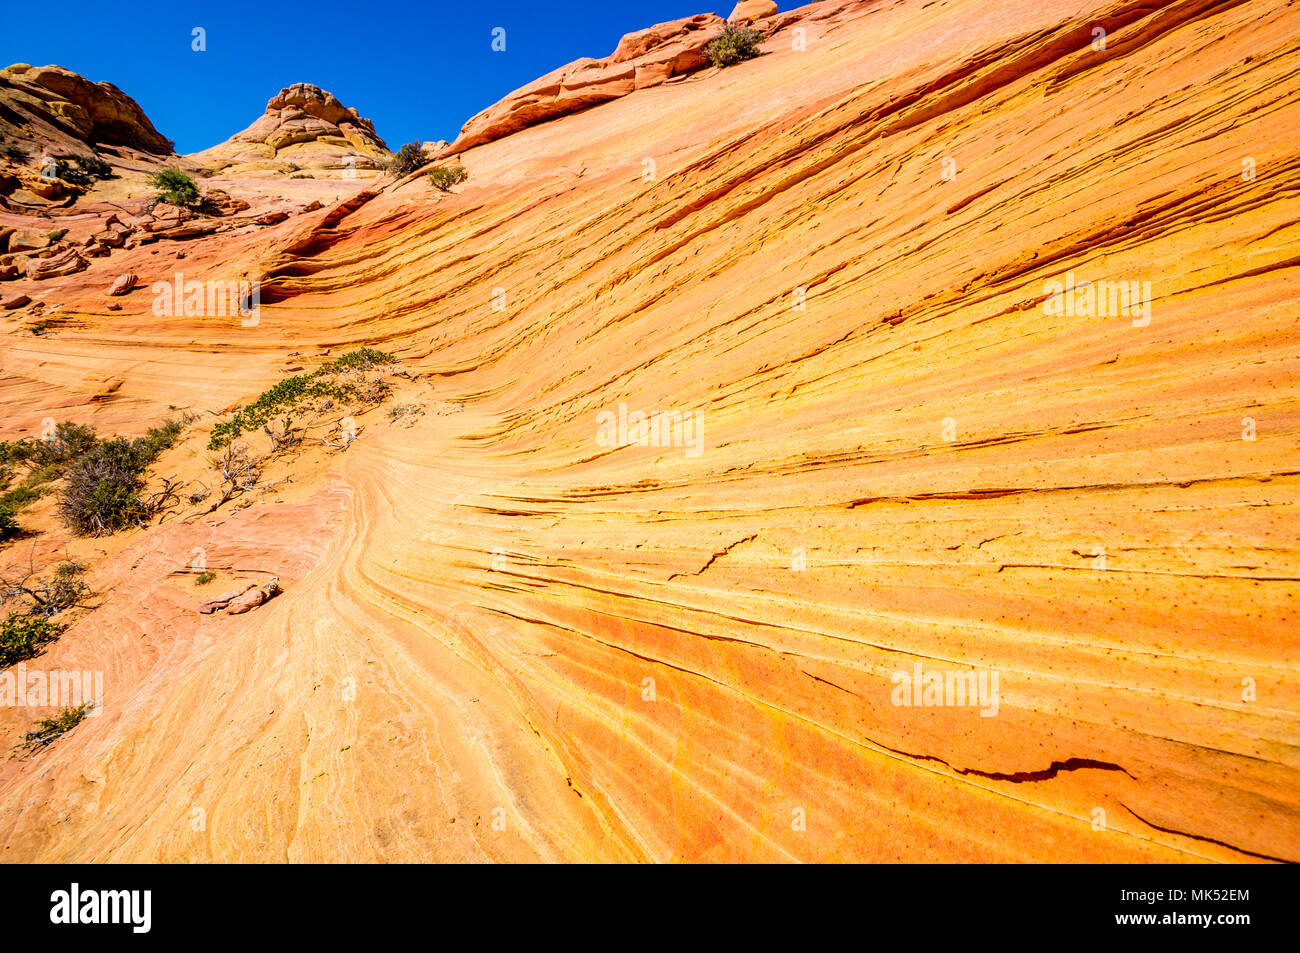 Colorful red and gold stripes in sandstone cliff formation Cottonwood access area South Coyote Buttes Vermilion Cliffs National Monument Arizona USA Stock Photo